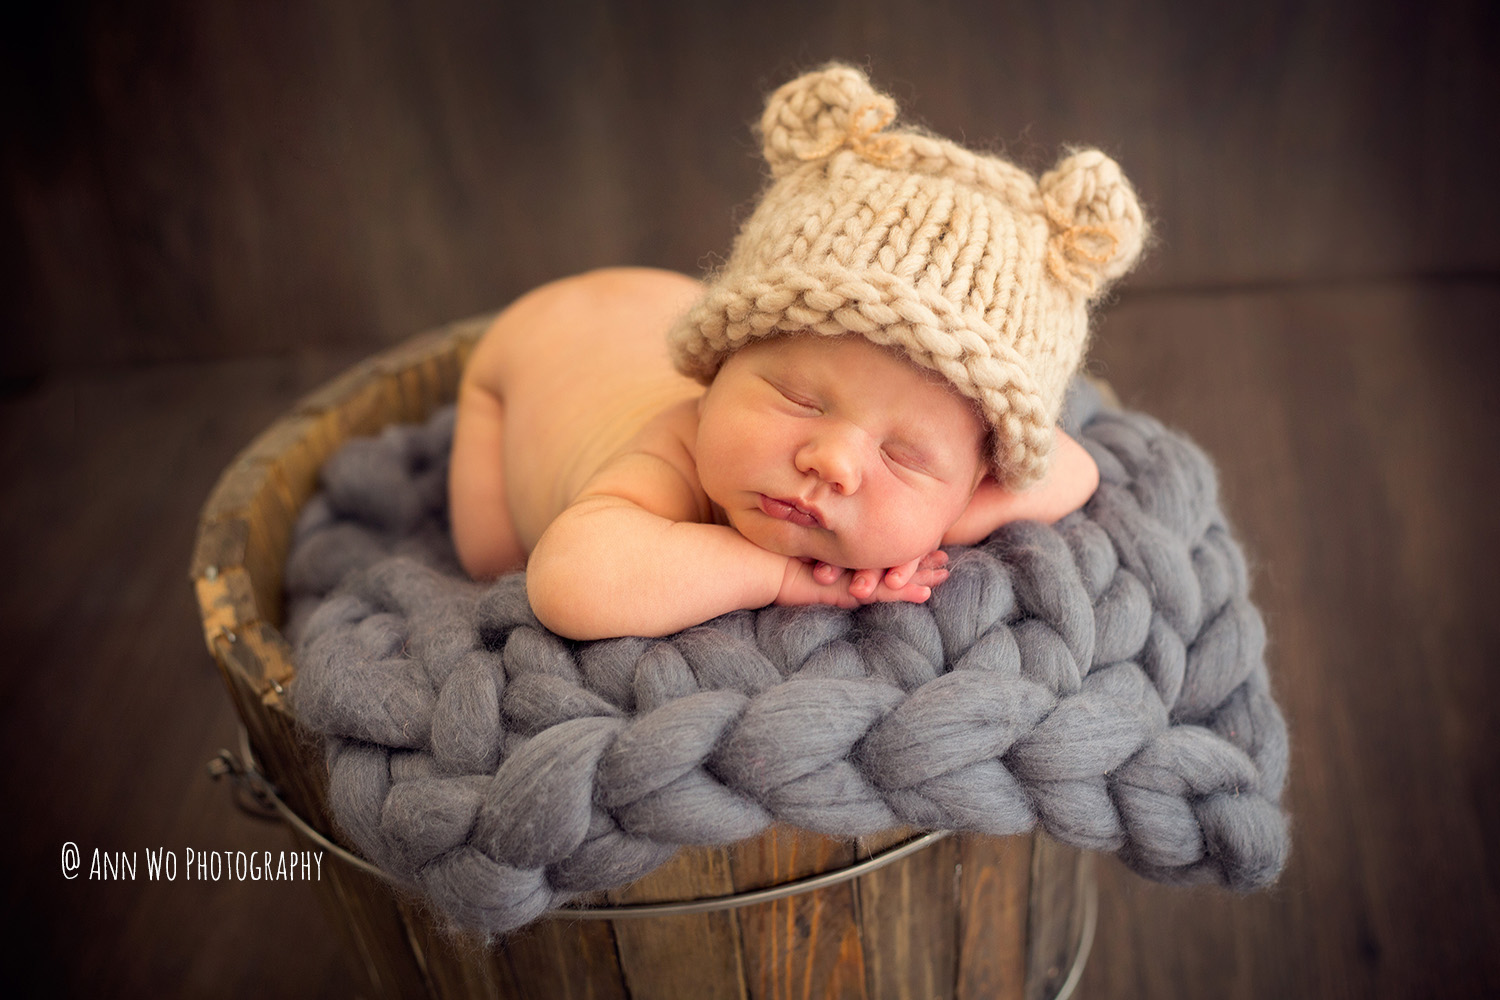 ann-wo-newborn-photo-training-13Apr14-preview4.jpg